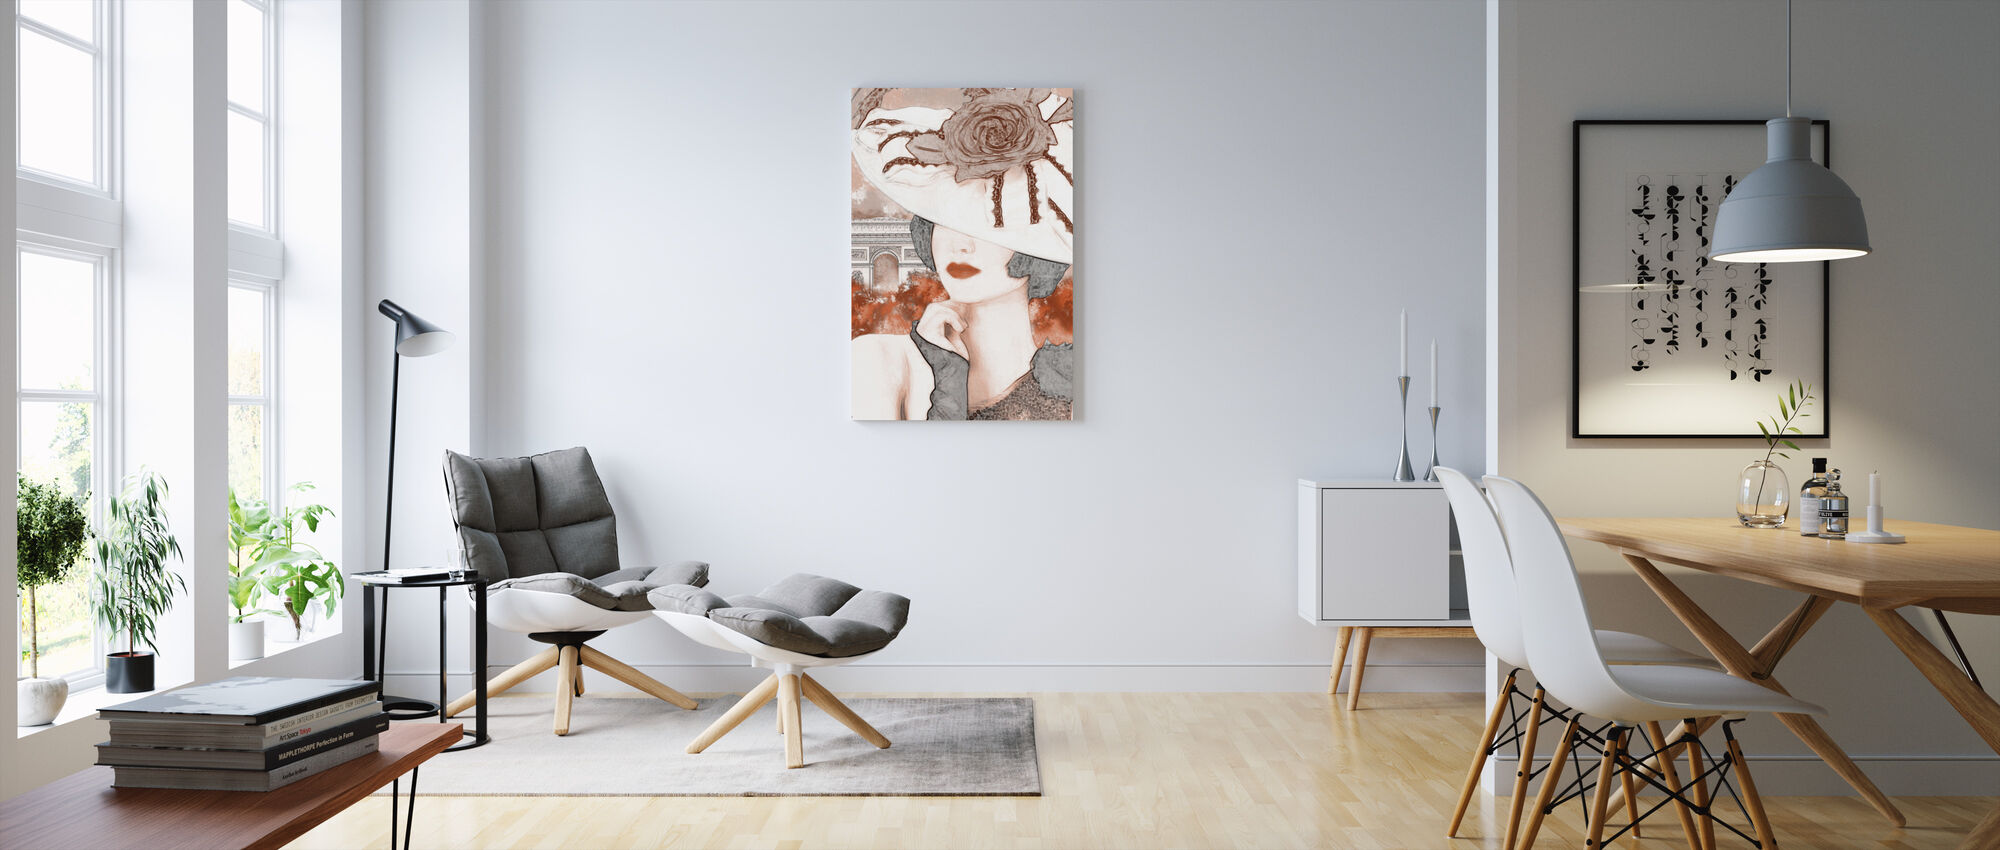 A Pensive Woman - Canvas print - Living Room